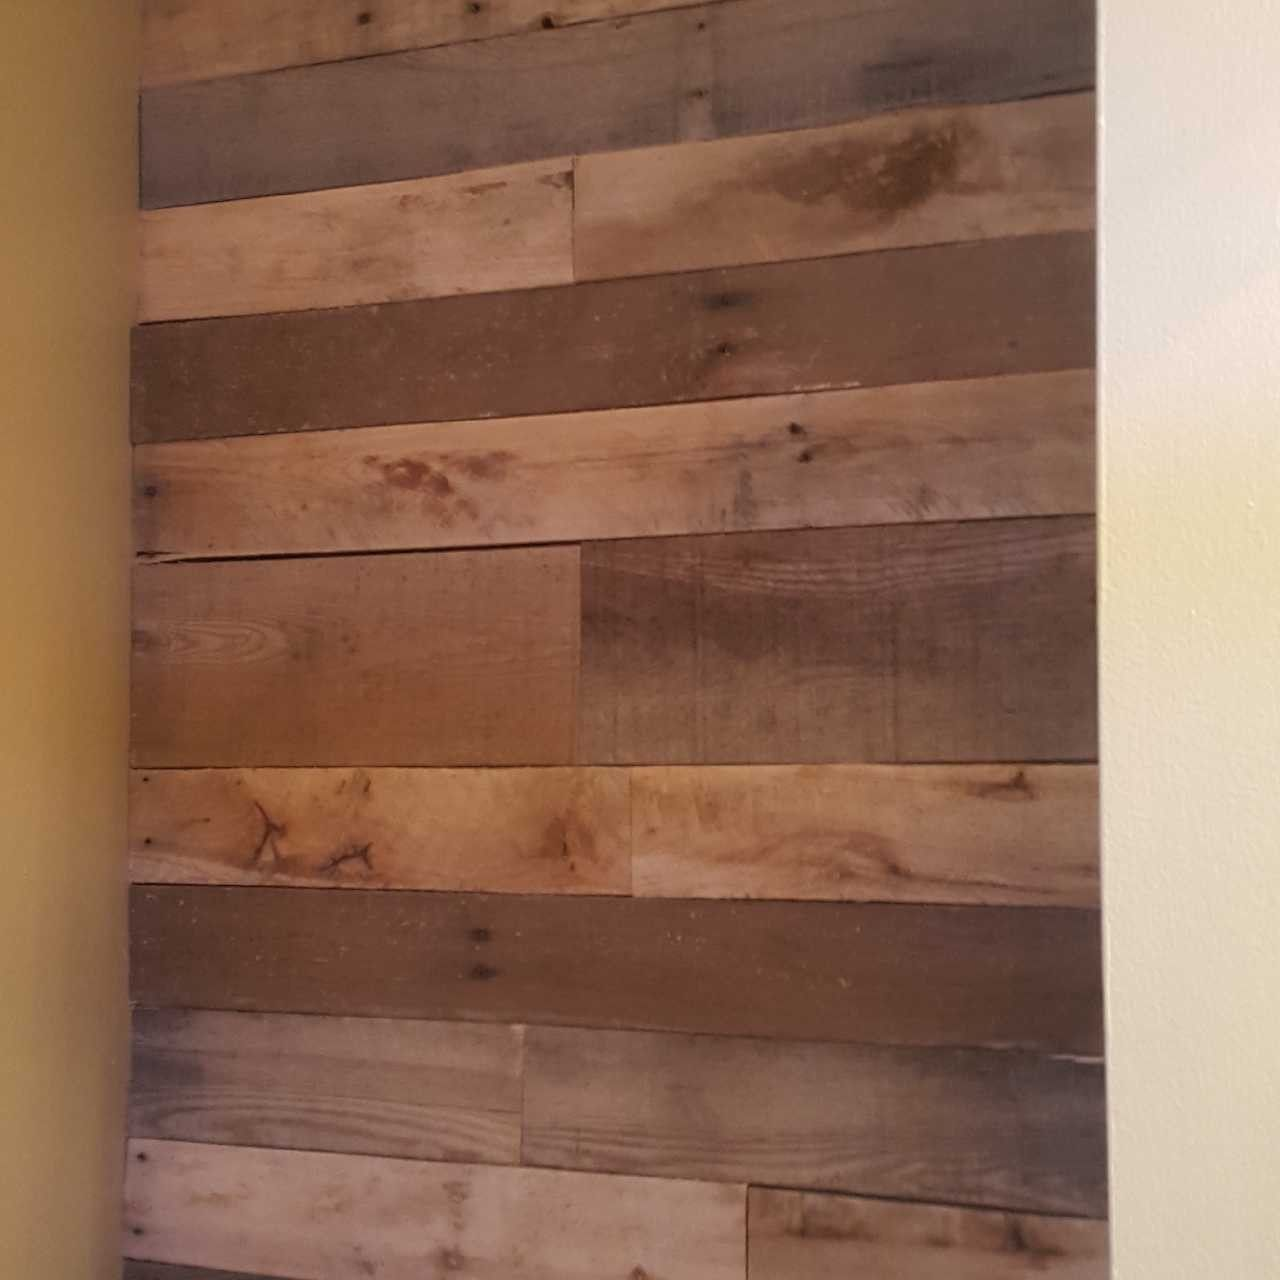 Accent Wall Good Or Bad: Our First Attempt At A Pallet Accent Wall! Not Too Bad